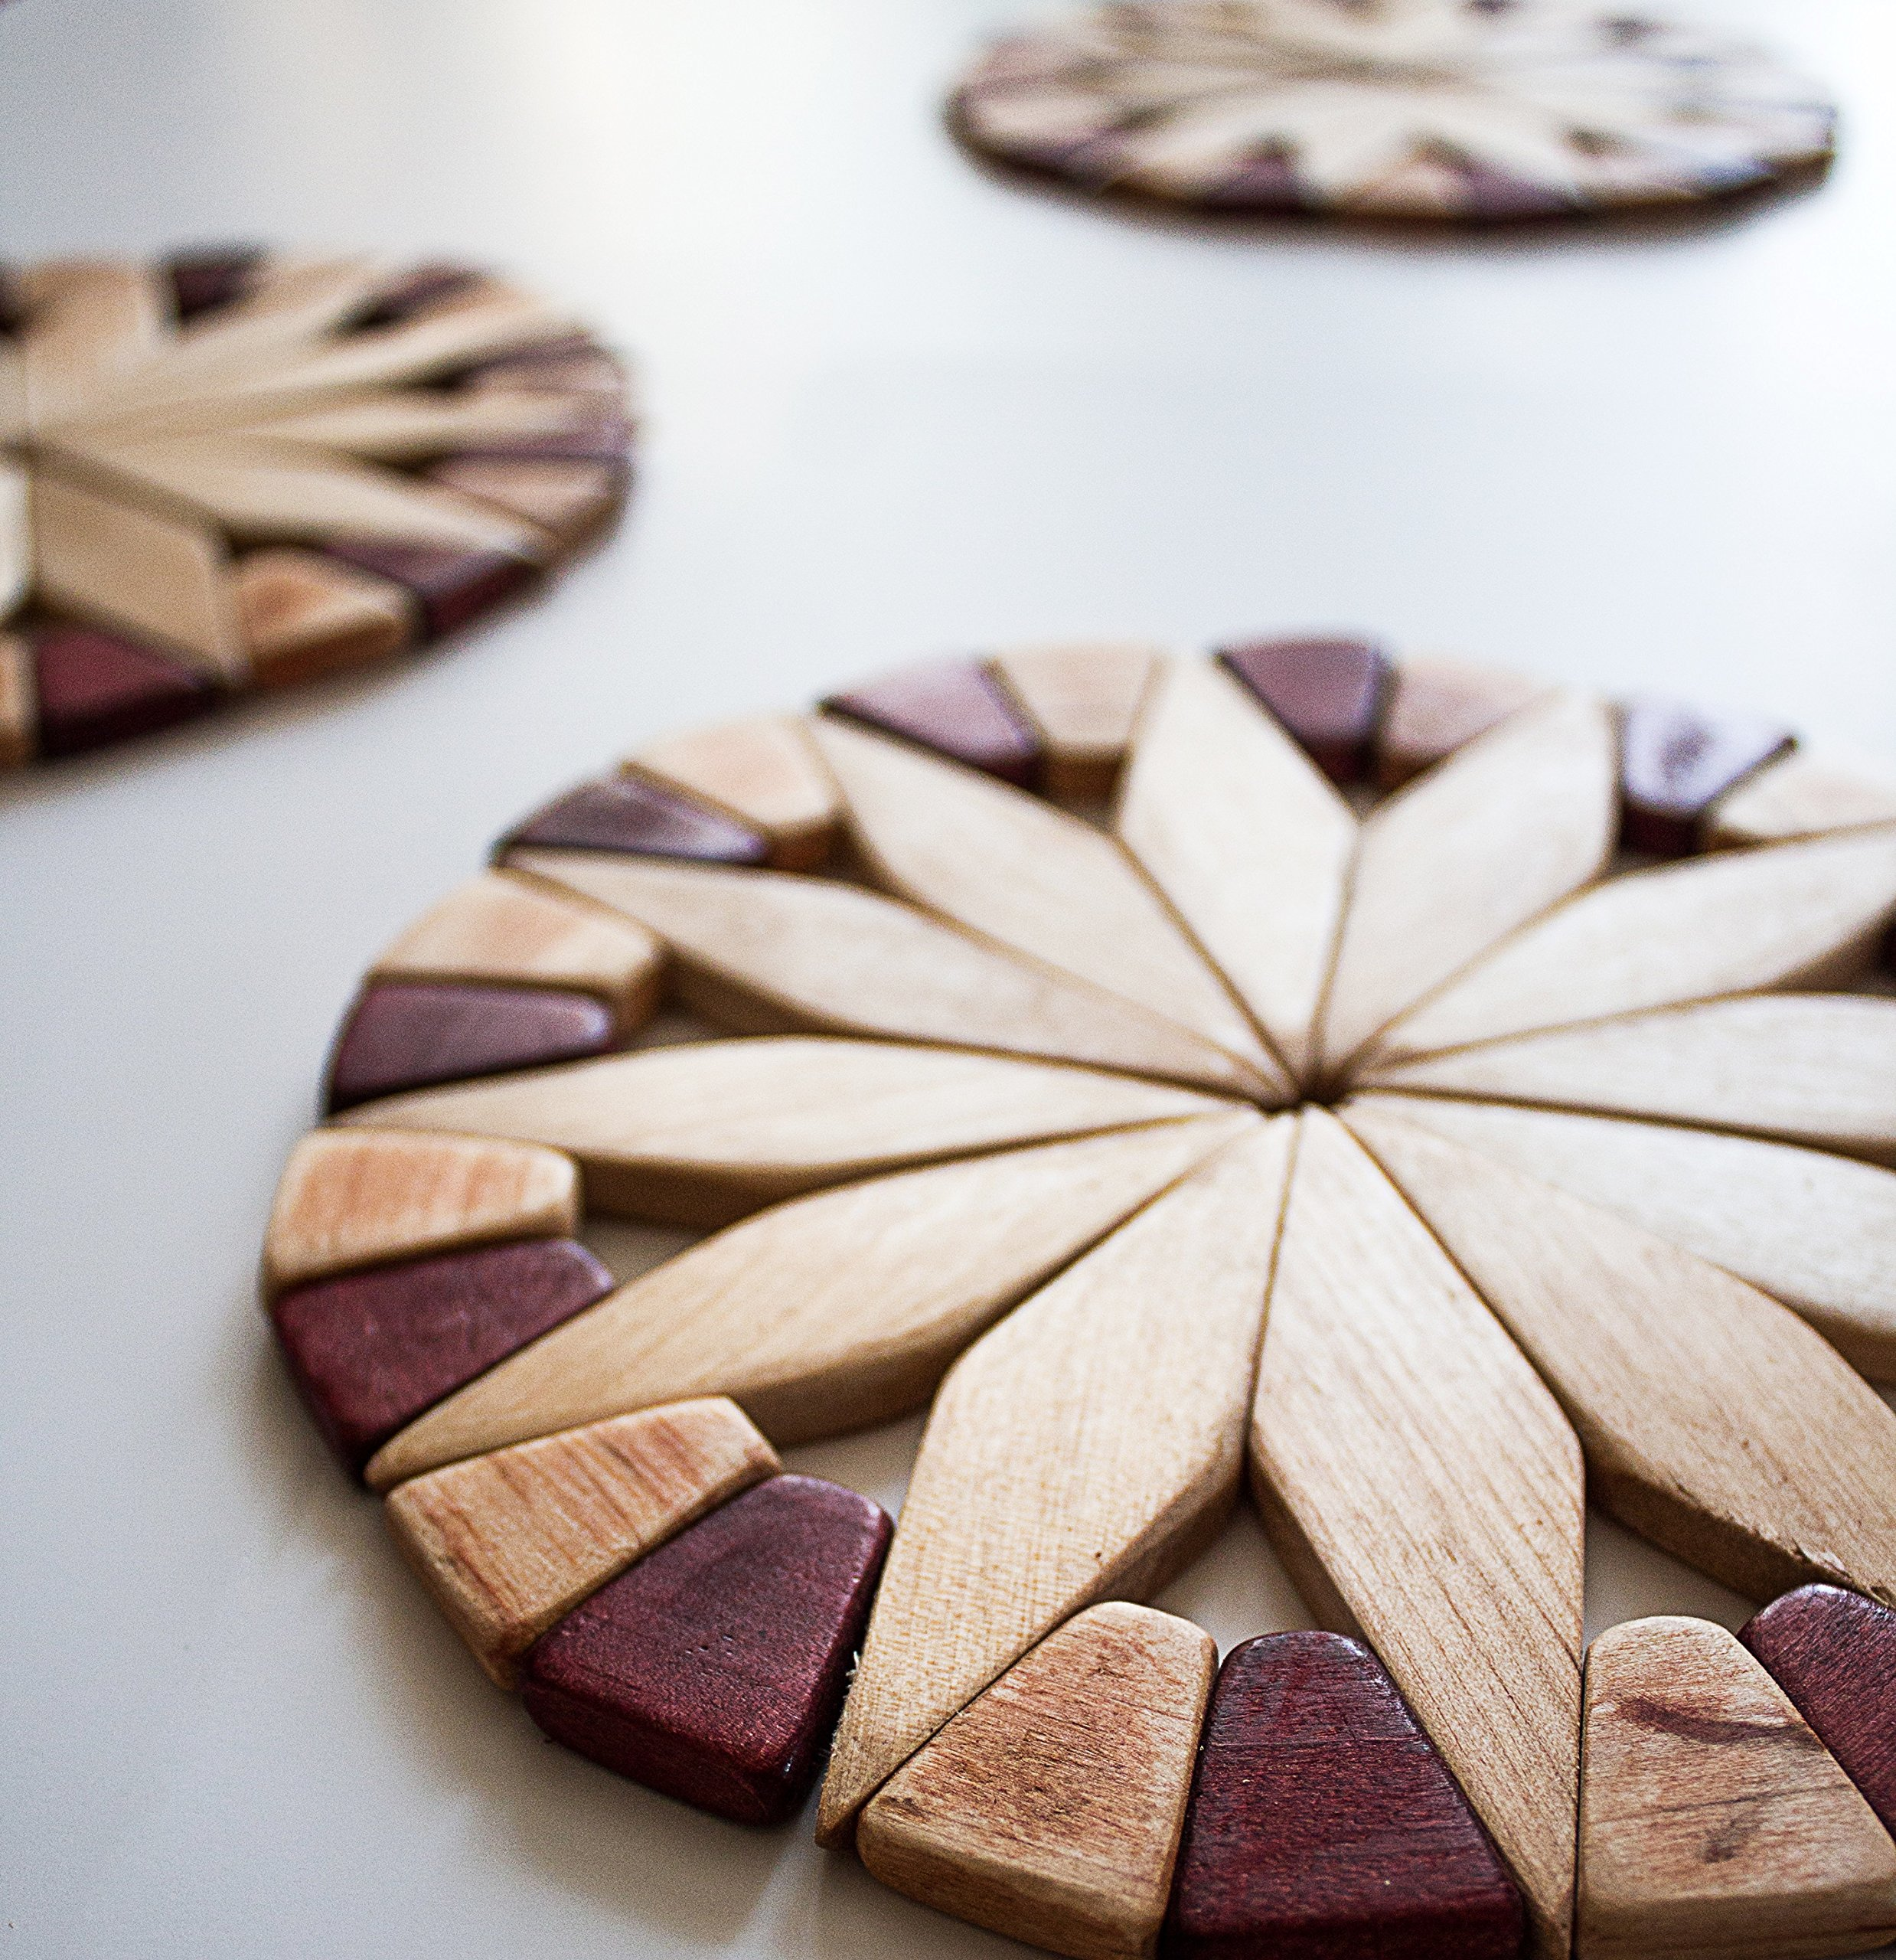 Natural Wood Trivets For Hot Dishes - 2 Eco-friendly, Sturdy and Durable 7'' Kitchen Hot Pads. Handmade Festive Design Table Decor - Perfect Kitchen Gifts Idea. by ECOSALL (Image #4)